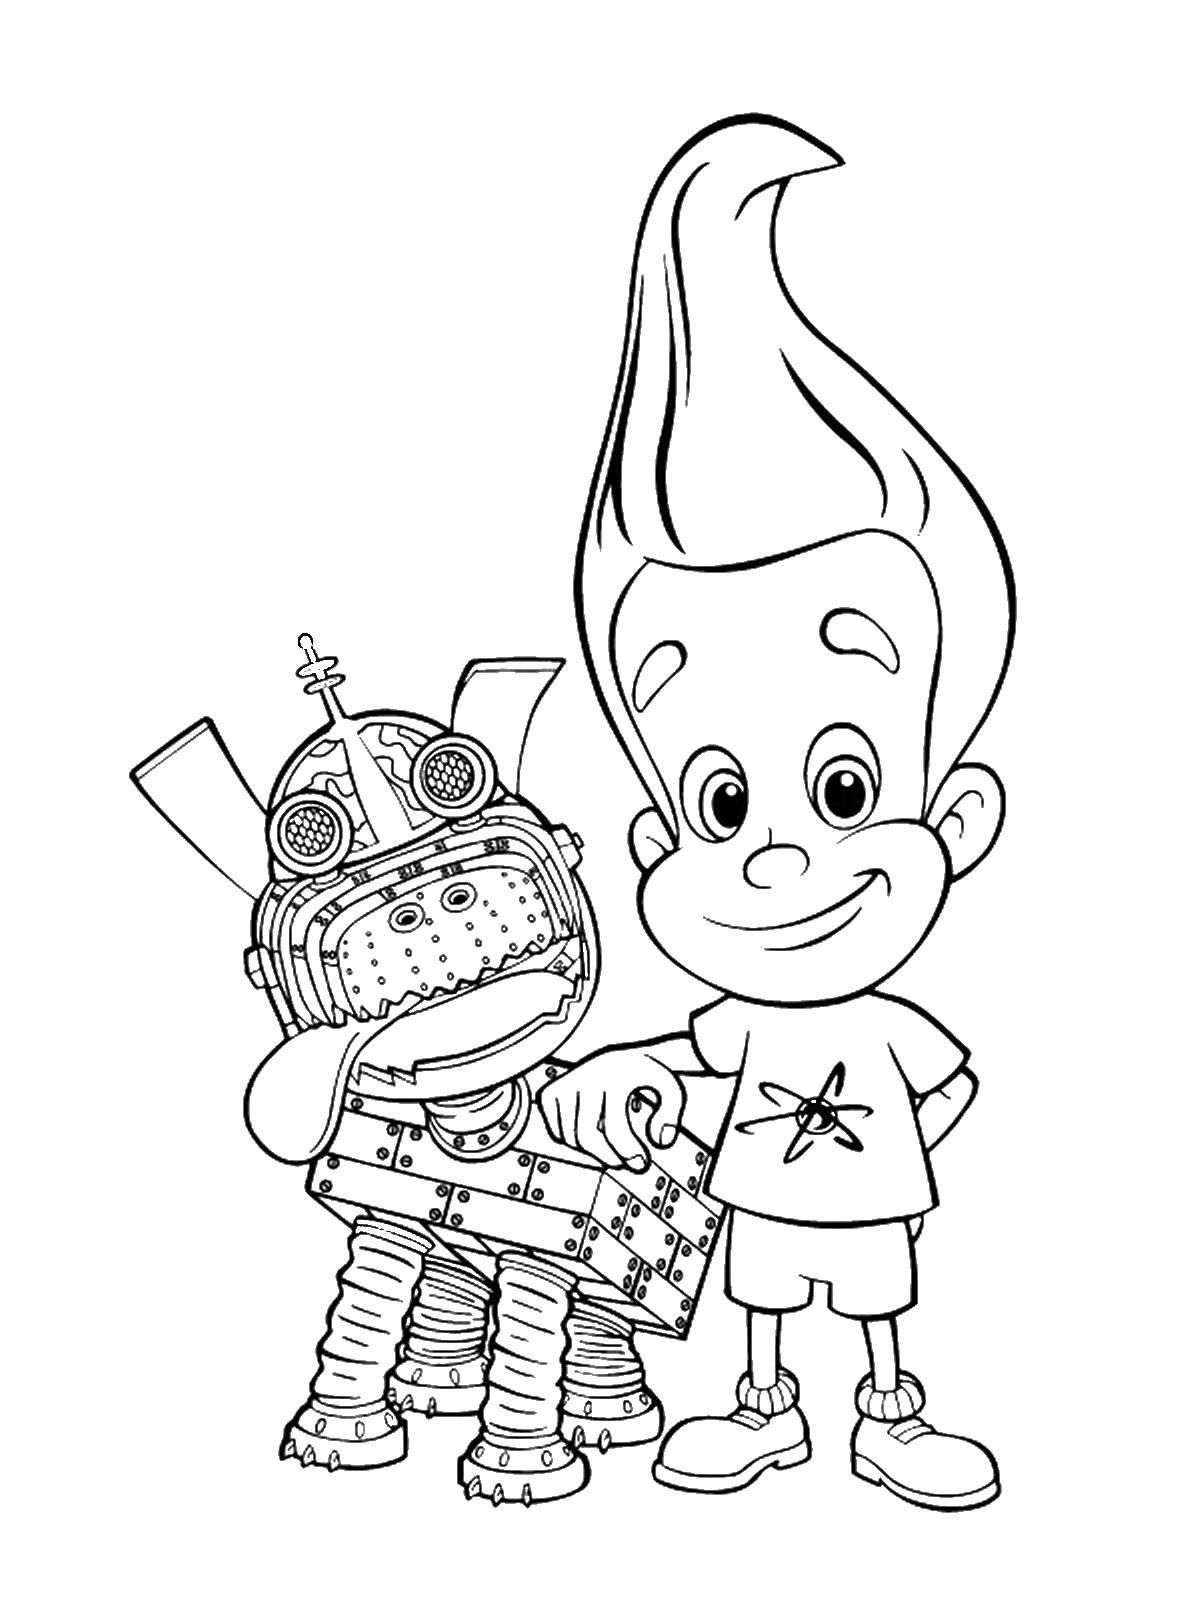 Jimmy Neutron Coloring Pages Jimmy Neutron Cartoon Coloring